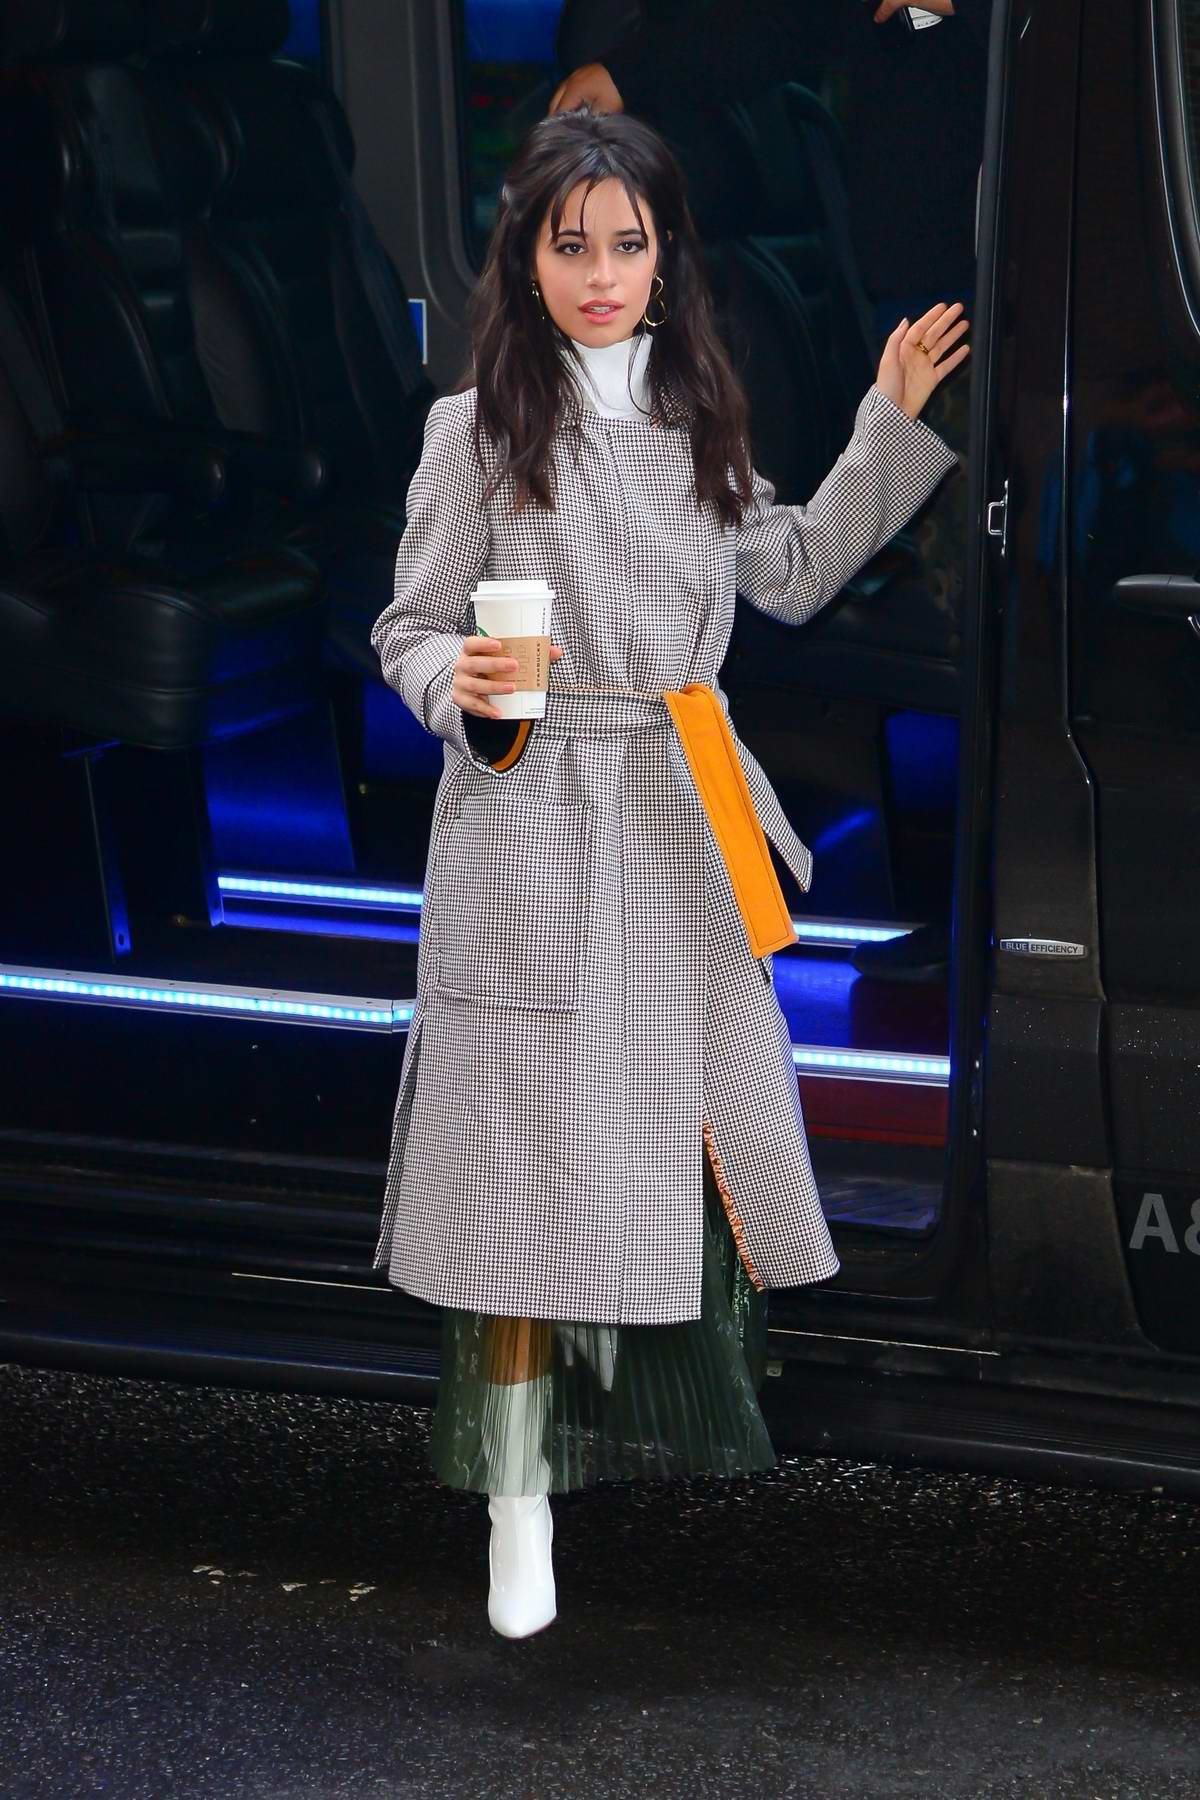 Camila Cabello looking chic and stylish in a long grey coat as she headed out in New York City